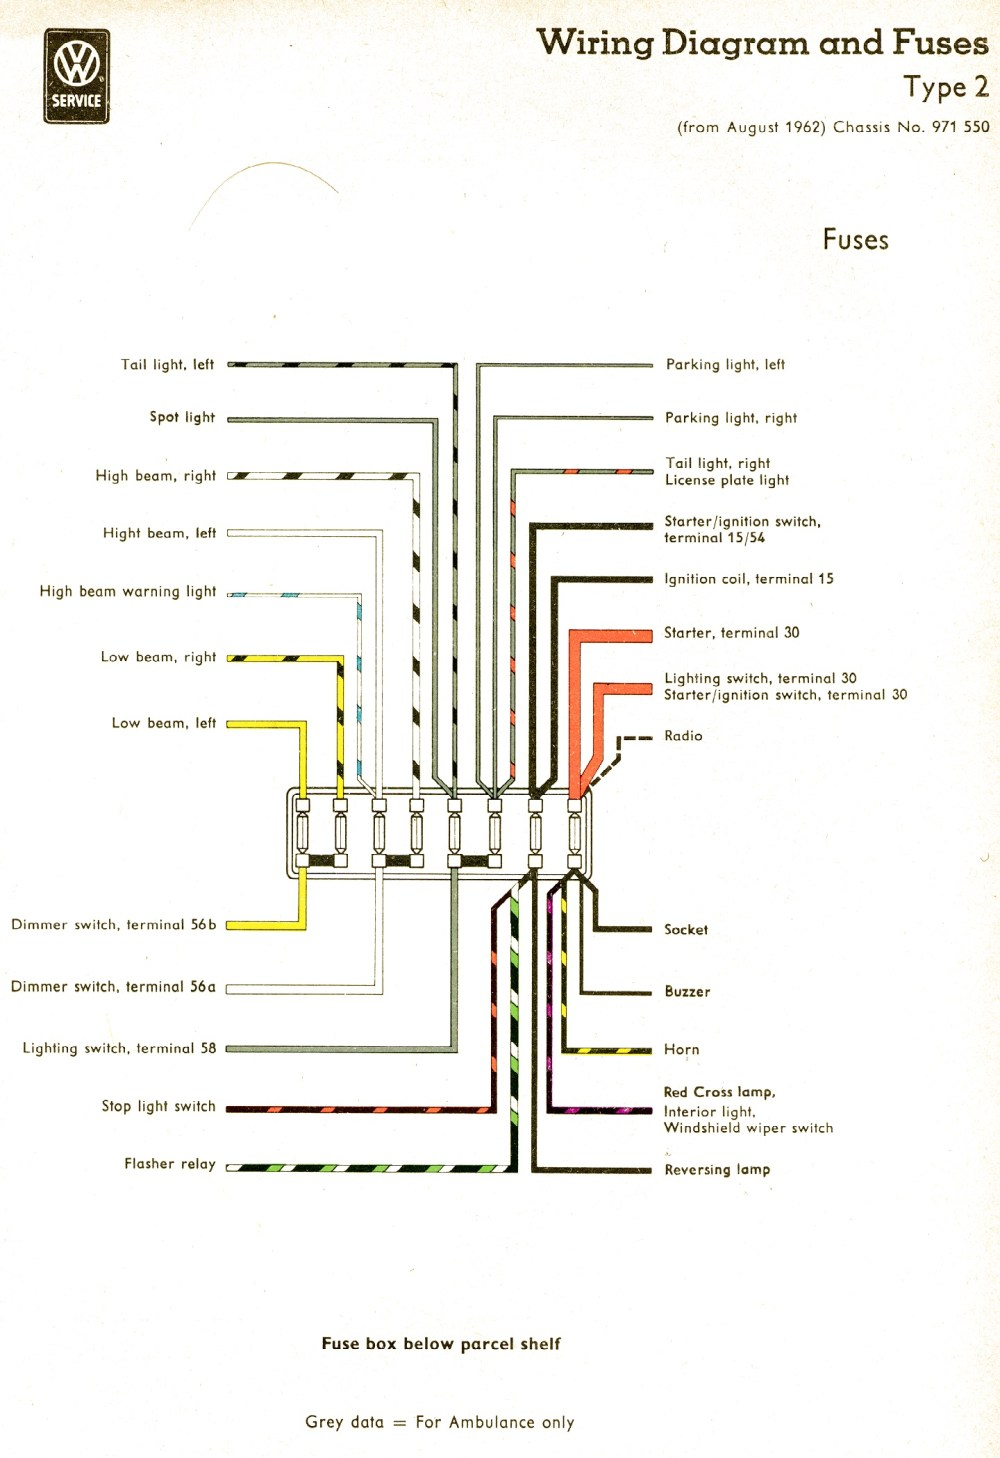 medium resolution of 1973 cougar fuse box wiring diagram1973 cougar fuse box schematic diagram1973 cougar fuse box wiring diagram